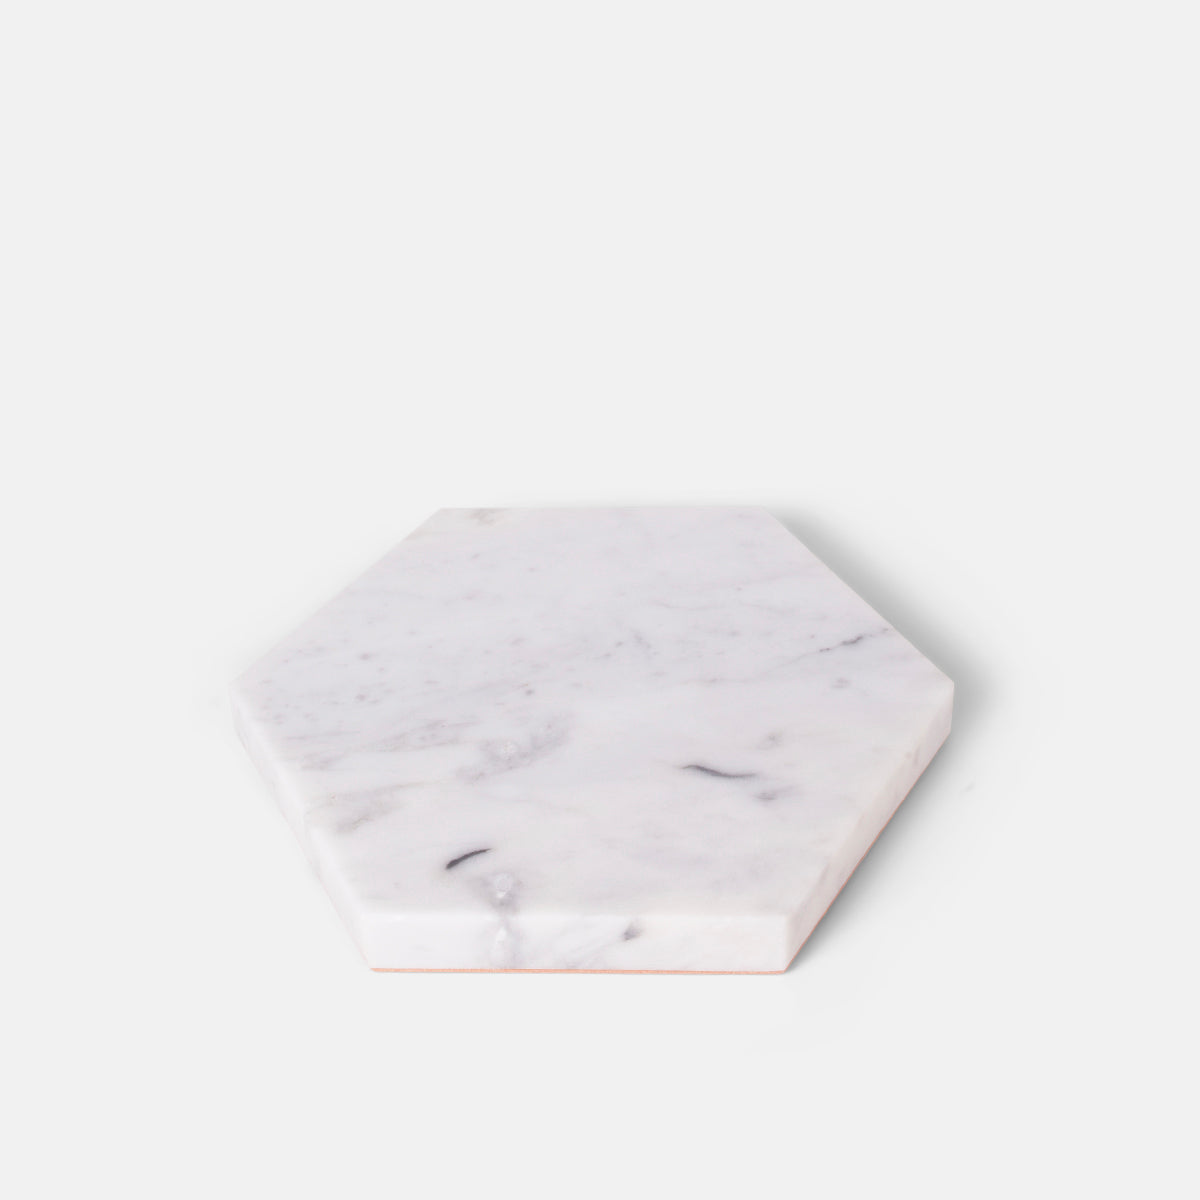 White Hexagon Stone Trivet